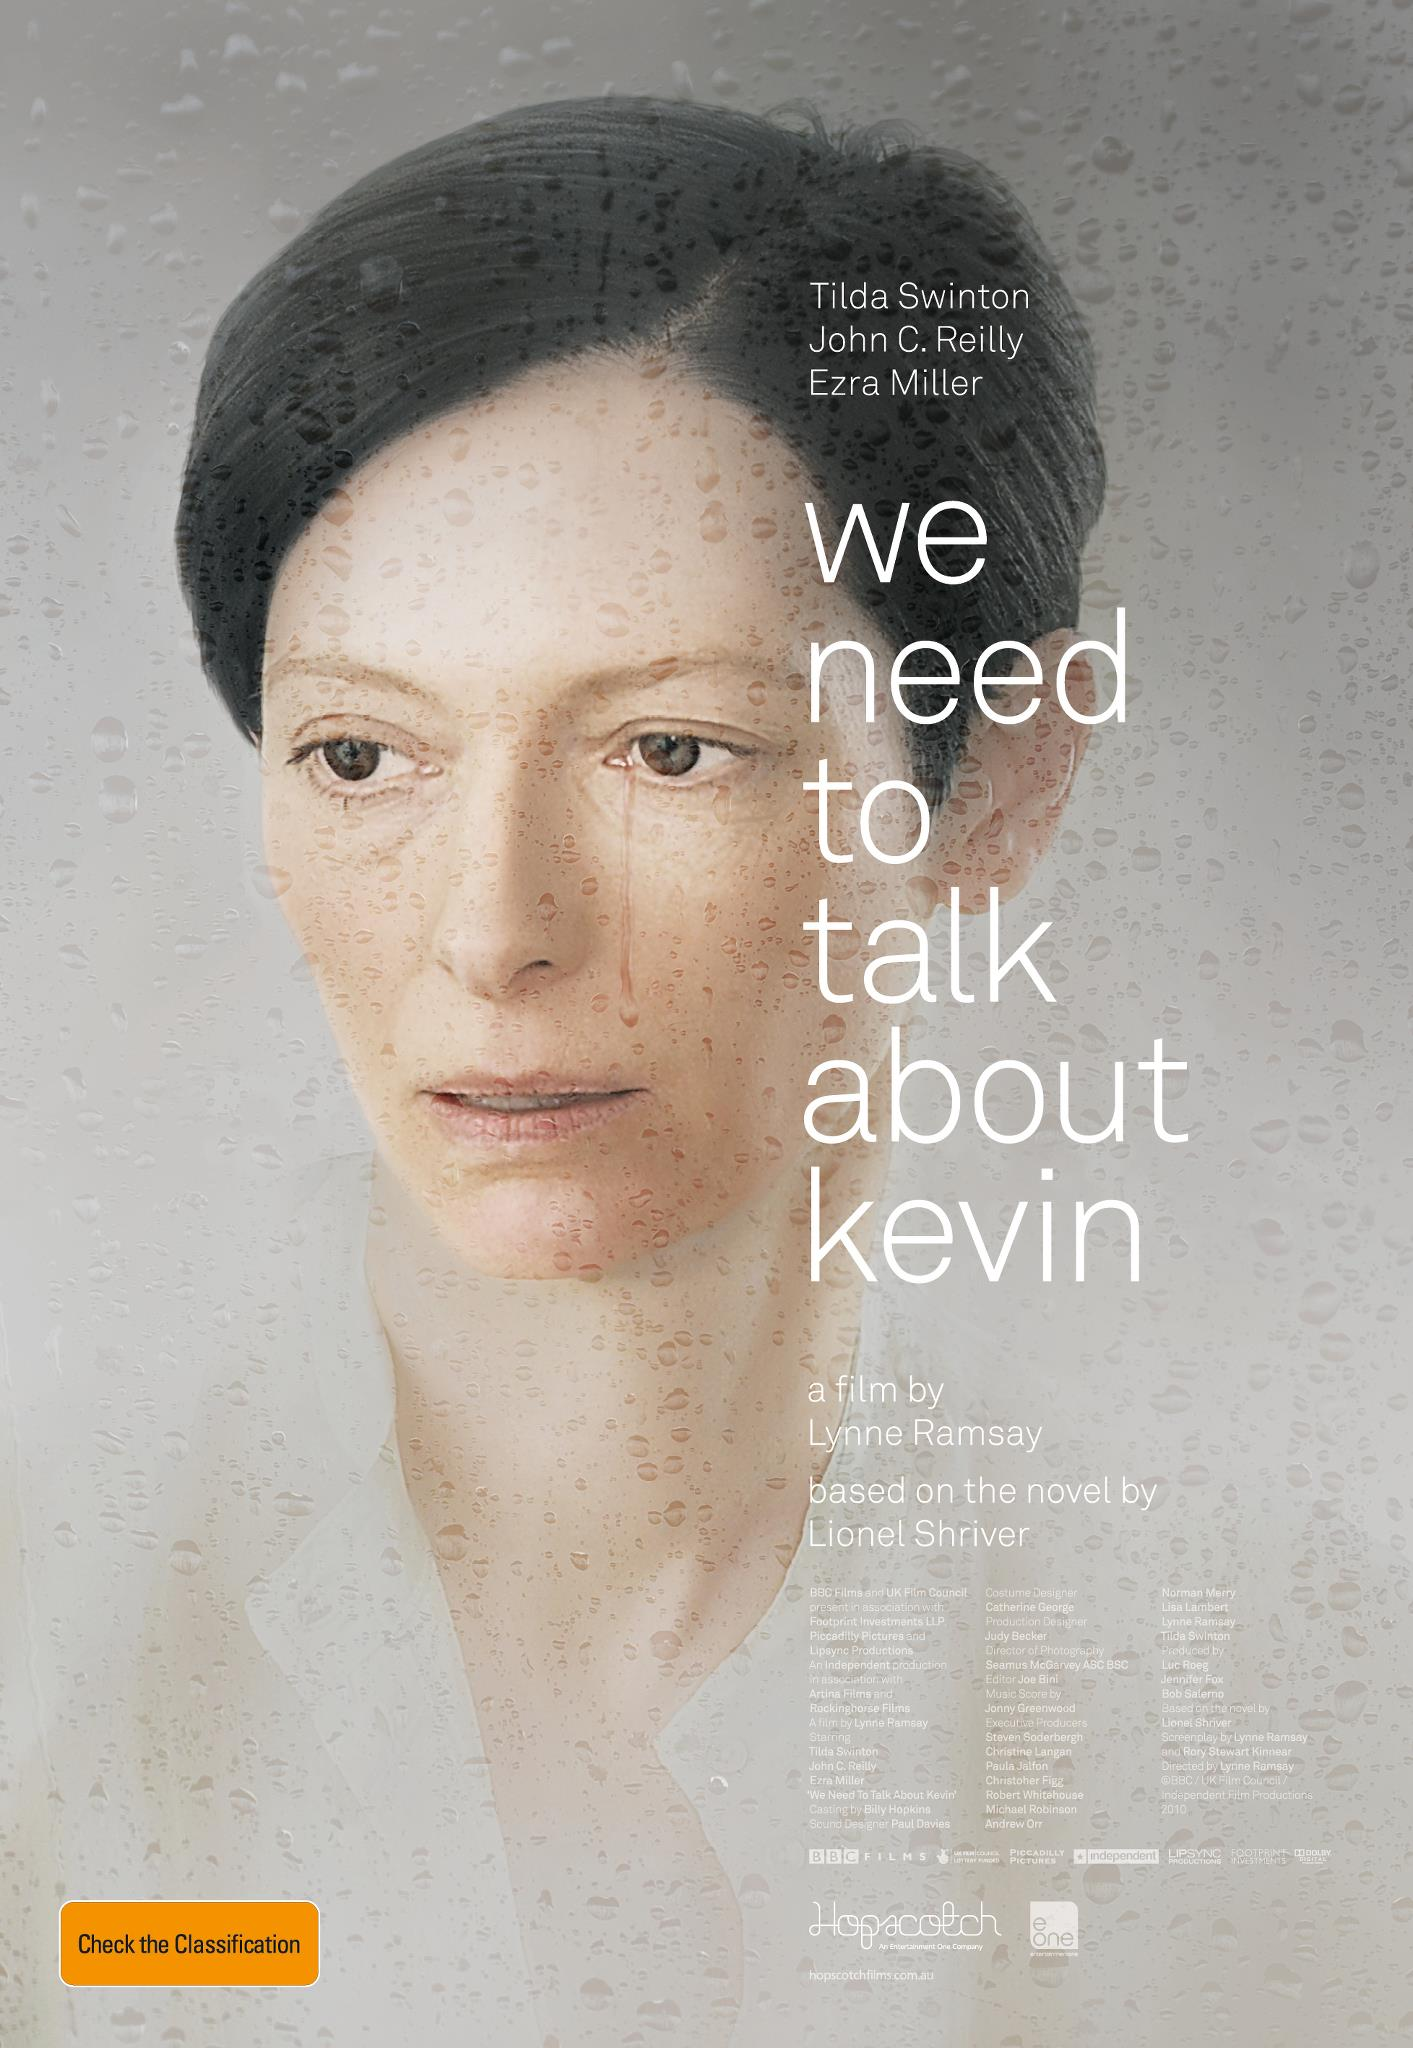 A Thousand Words About Kevin